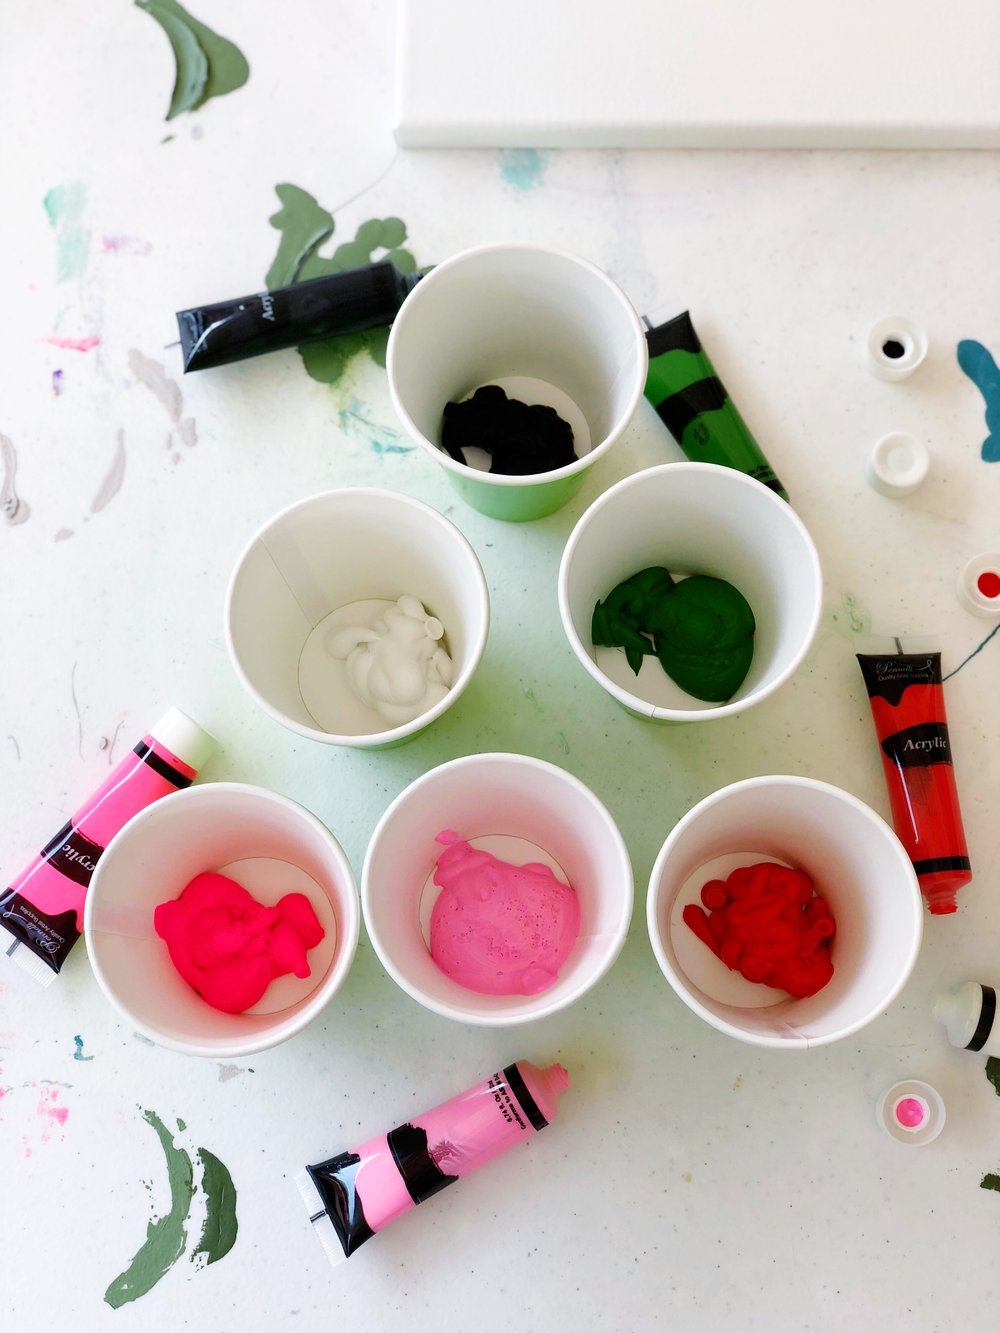 2. Next, place each color of paint into its own separate cup.